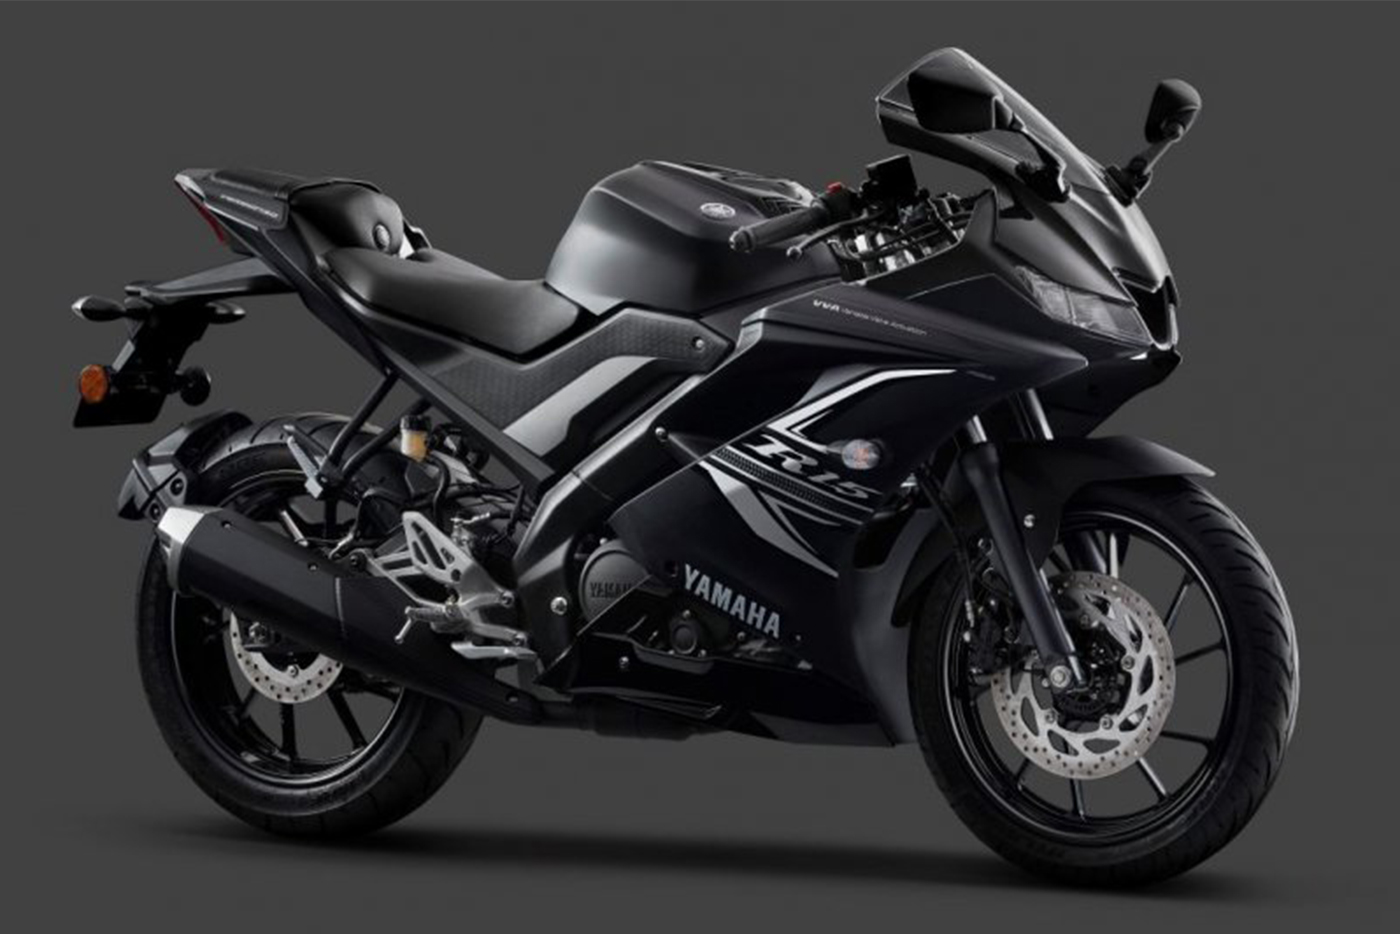 yamaha-yzf-r15-v3-0-abs-darknight-708f.jpg